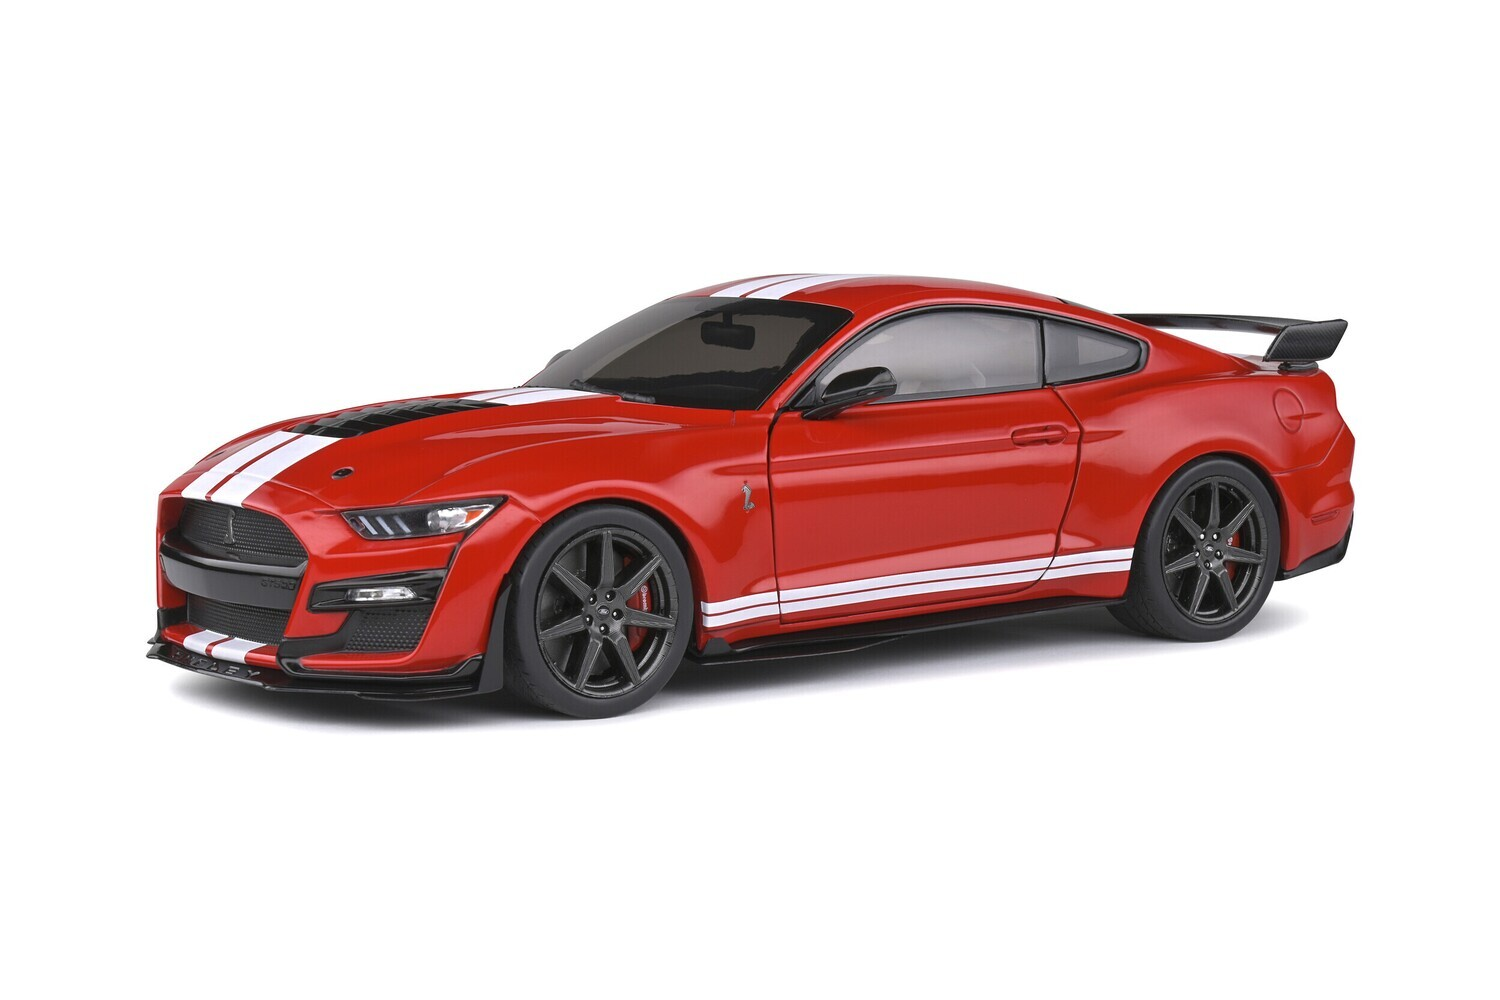 Ford Mustang GT500 Fast Track – Racing Red – 2020 - 1/18